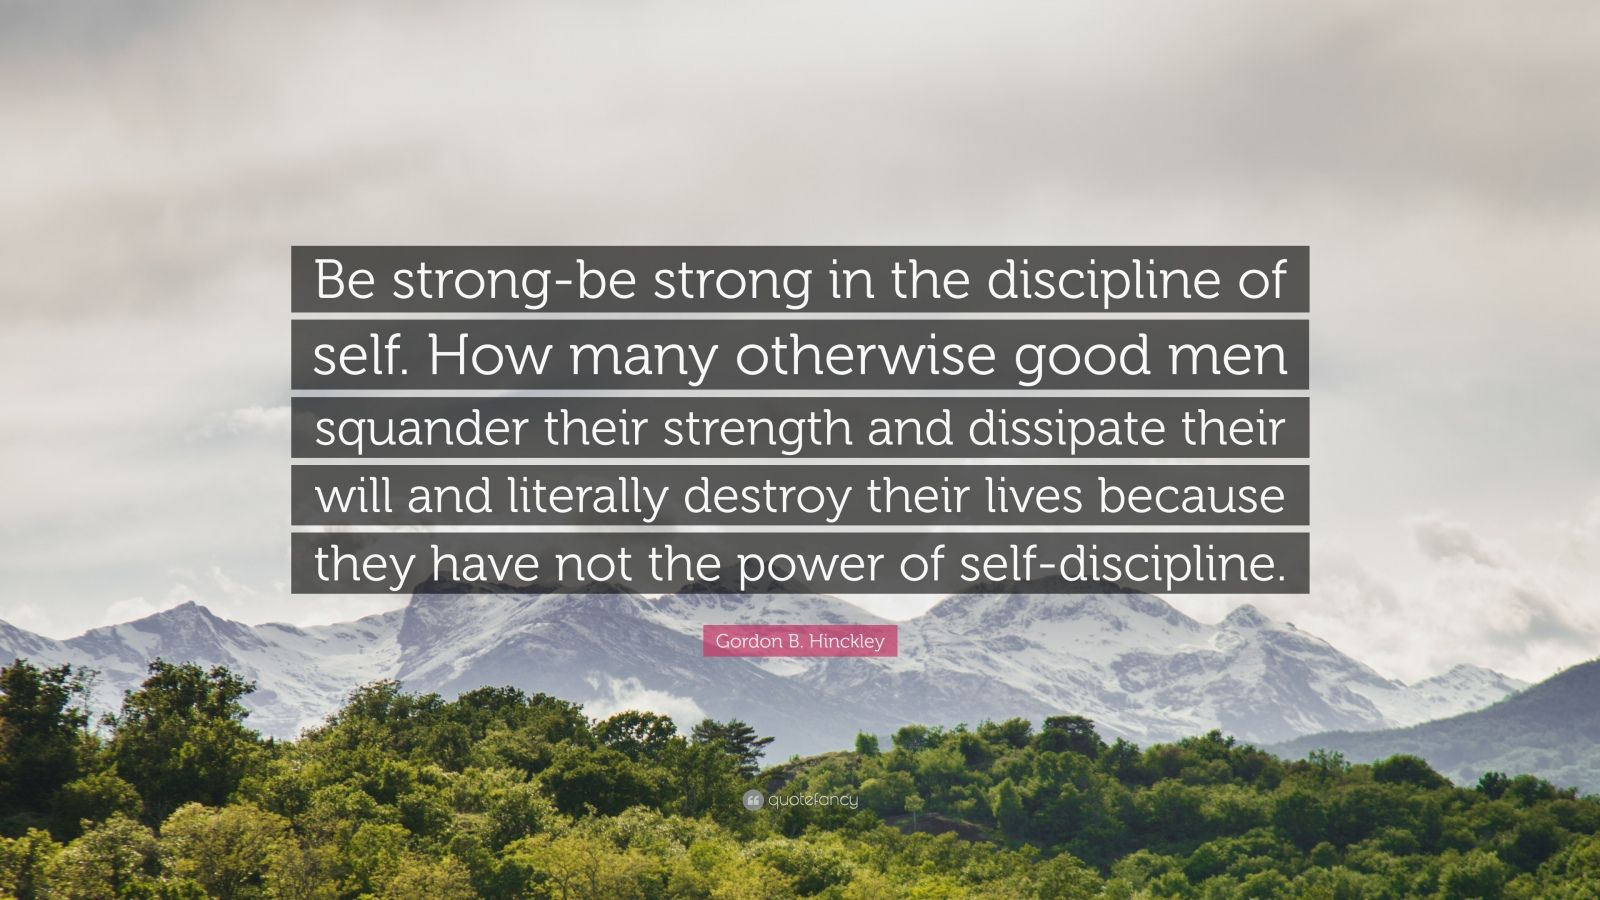 "Gordon B. Hinckley Quote: ""Be strong-be strong in the discipline of self. How many otherwise good men squander their strength and dissipate their will and literally destroy their lives because they have not the power of self-discipline."""